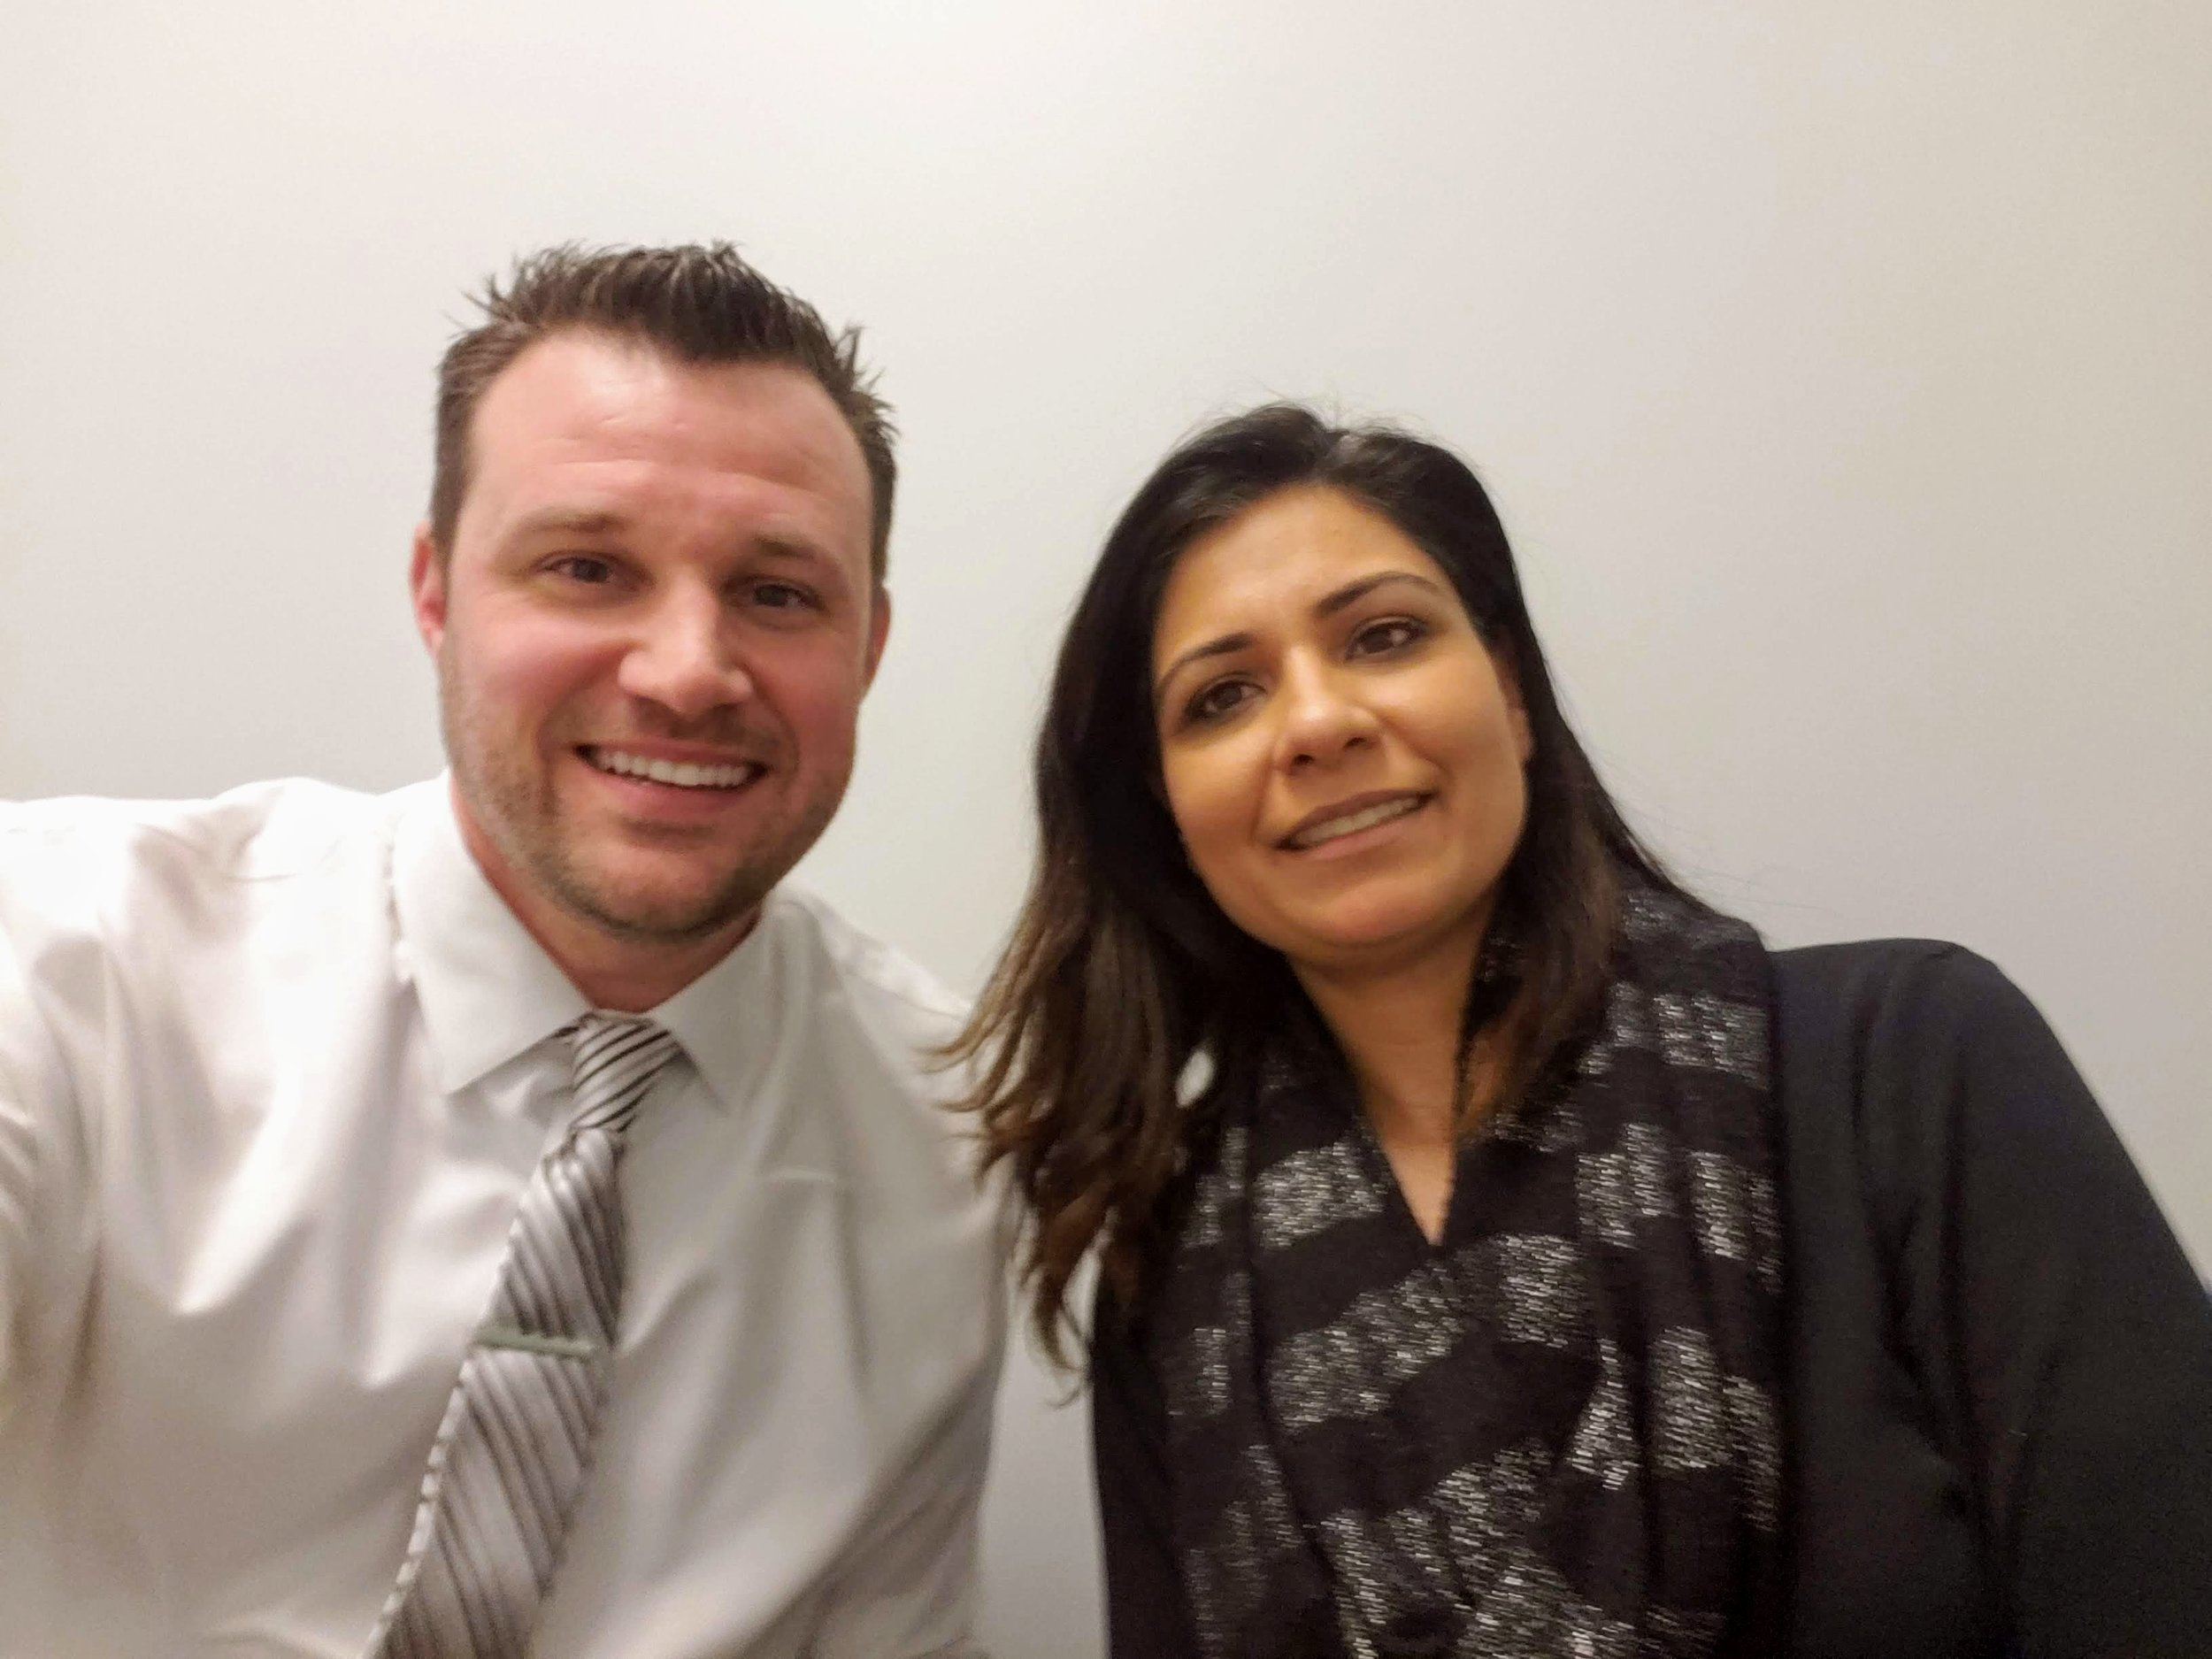 Mansi Anand and Mark Roehl - Enterprise agile coaches and change agentsWe are proven leaders with decades of experience serving as Senior Business Analysts and Agile Coaches. We hold certifications in project management (PMP, SAPM), agile processes (CSM), and analysis and testing (CBAP, ITQSB, ASEP). We are sought out as coaches and instructors and look forward to sharing our experiences to help others thrive and succeed.